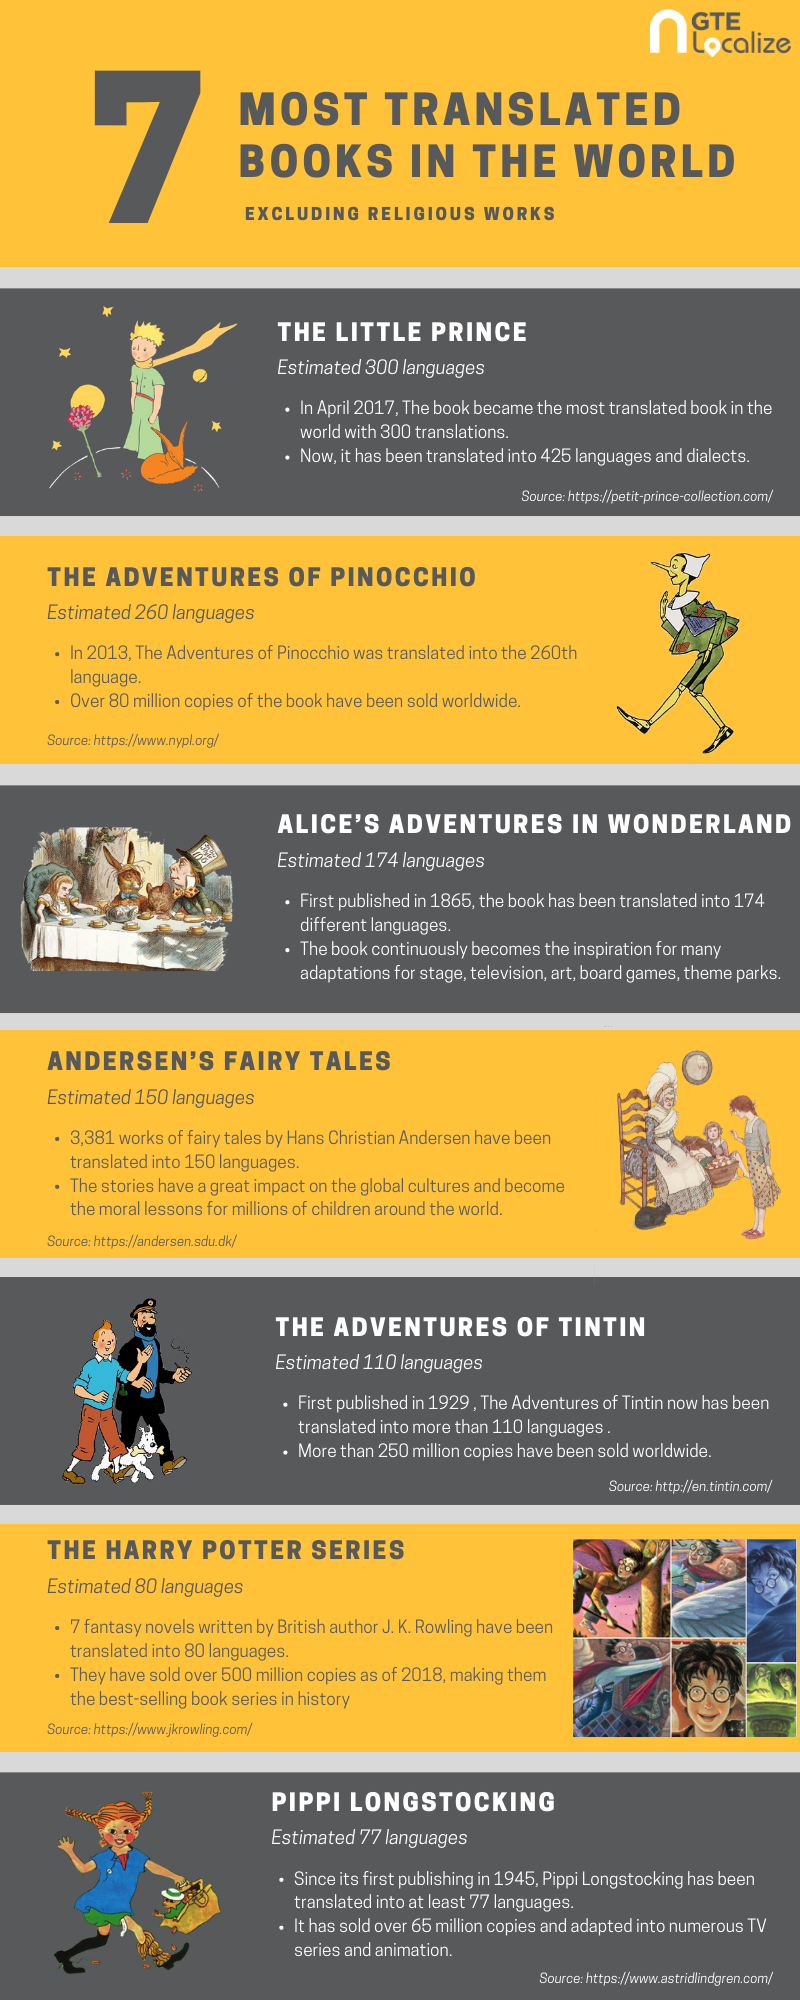 [Infographic] 7 most translated books